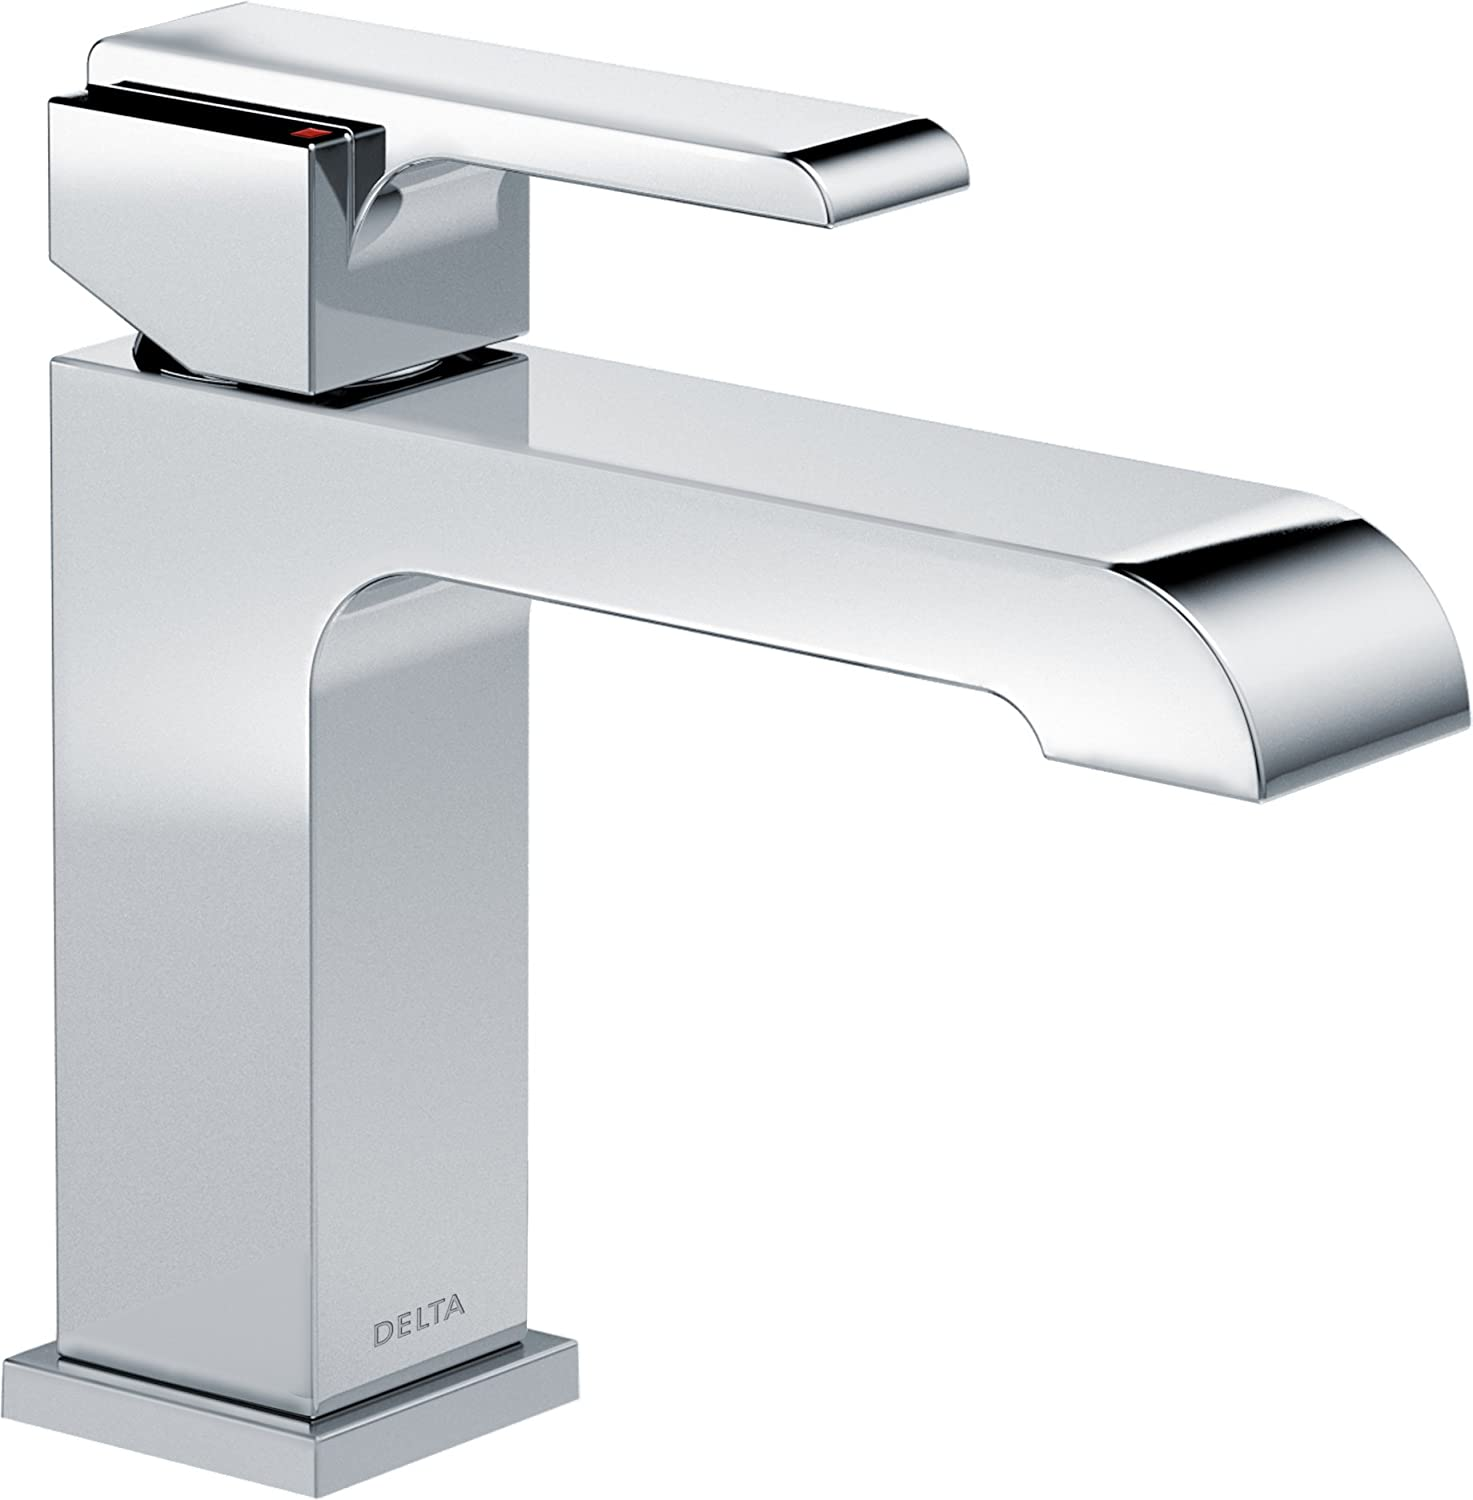 Delta 567LF-LPU Ara Single-Handle Bathroom Faucet, Chrome - - Amazon.com